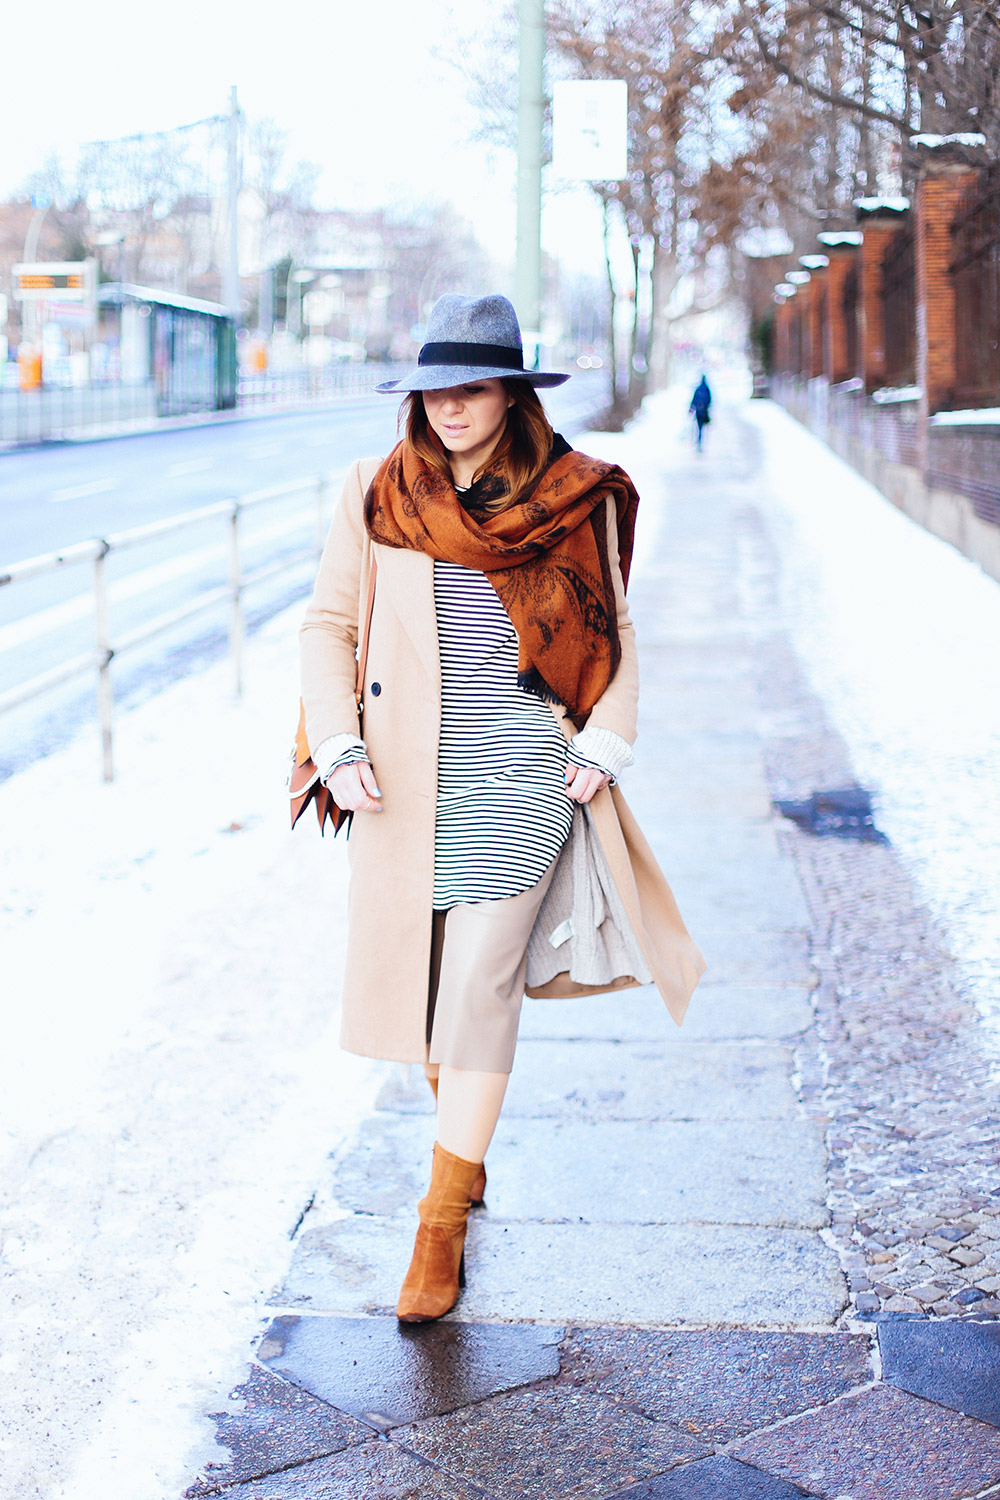 Layered looks with culottes in winter - Beige kombinieren ...